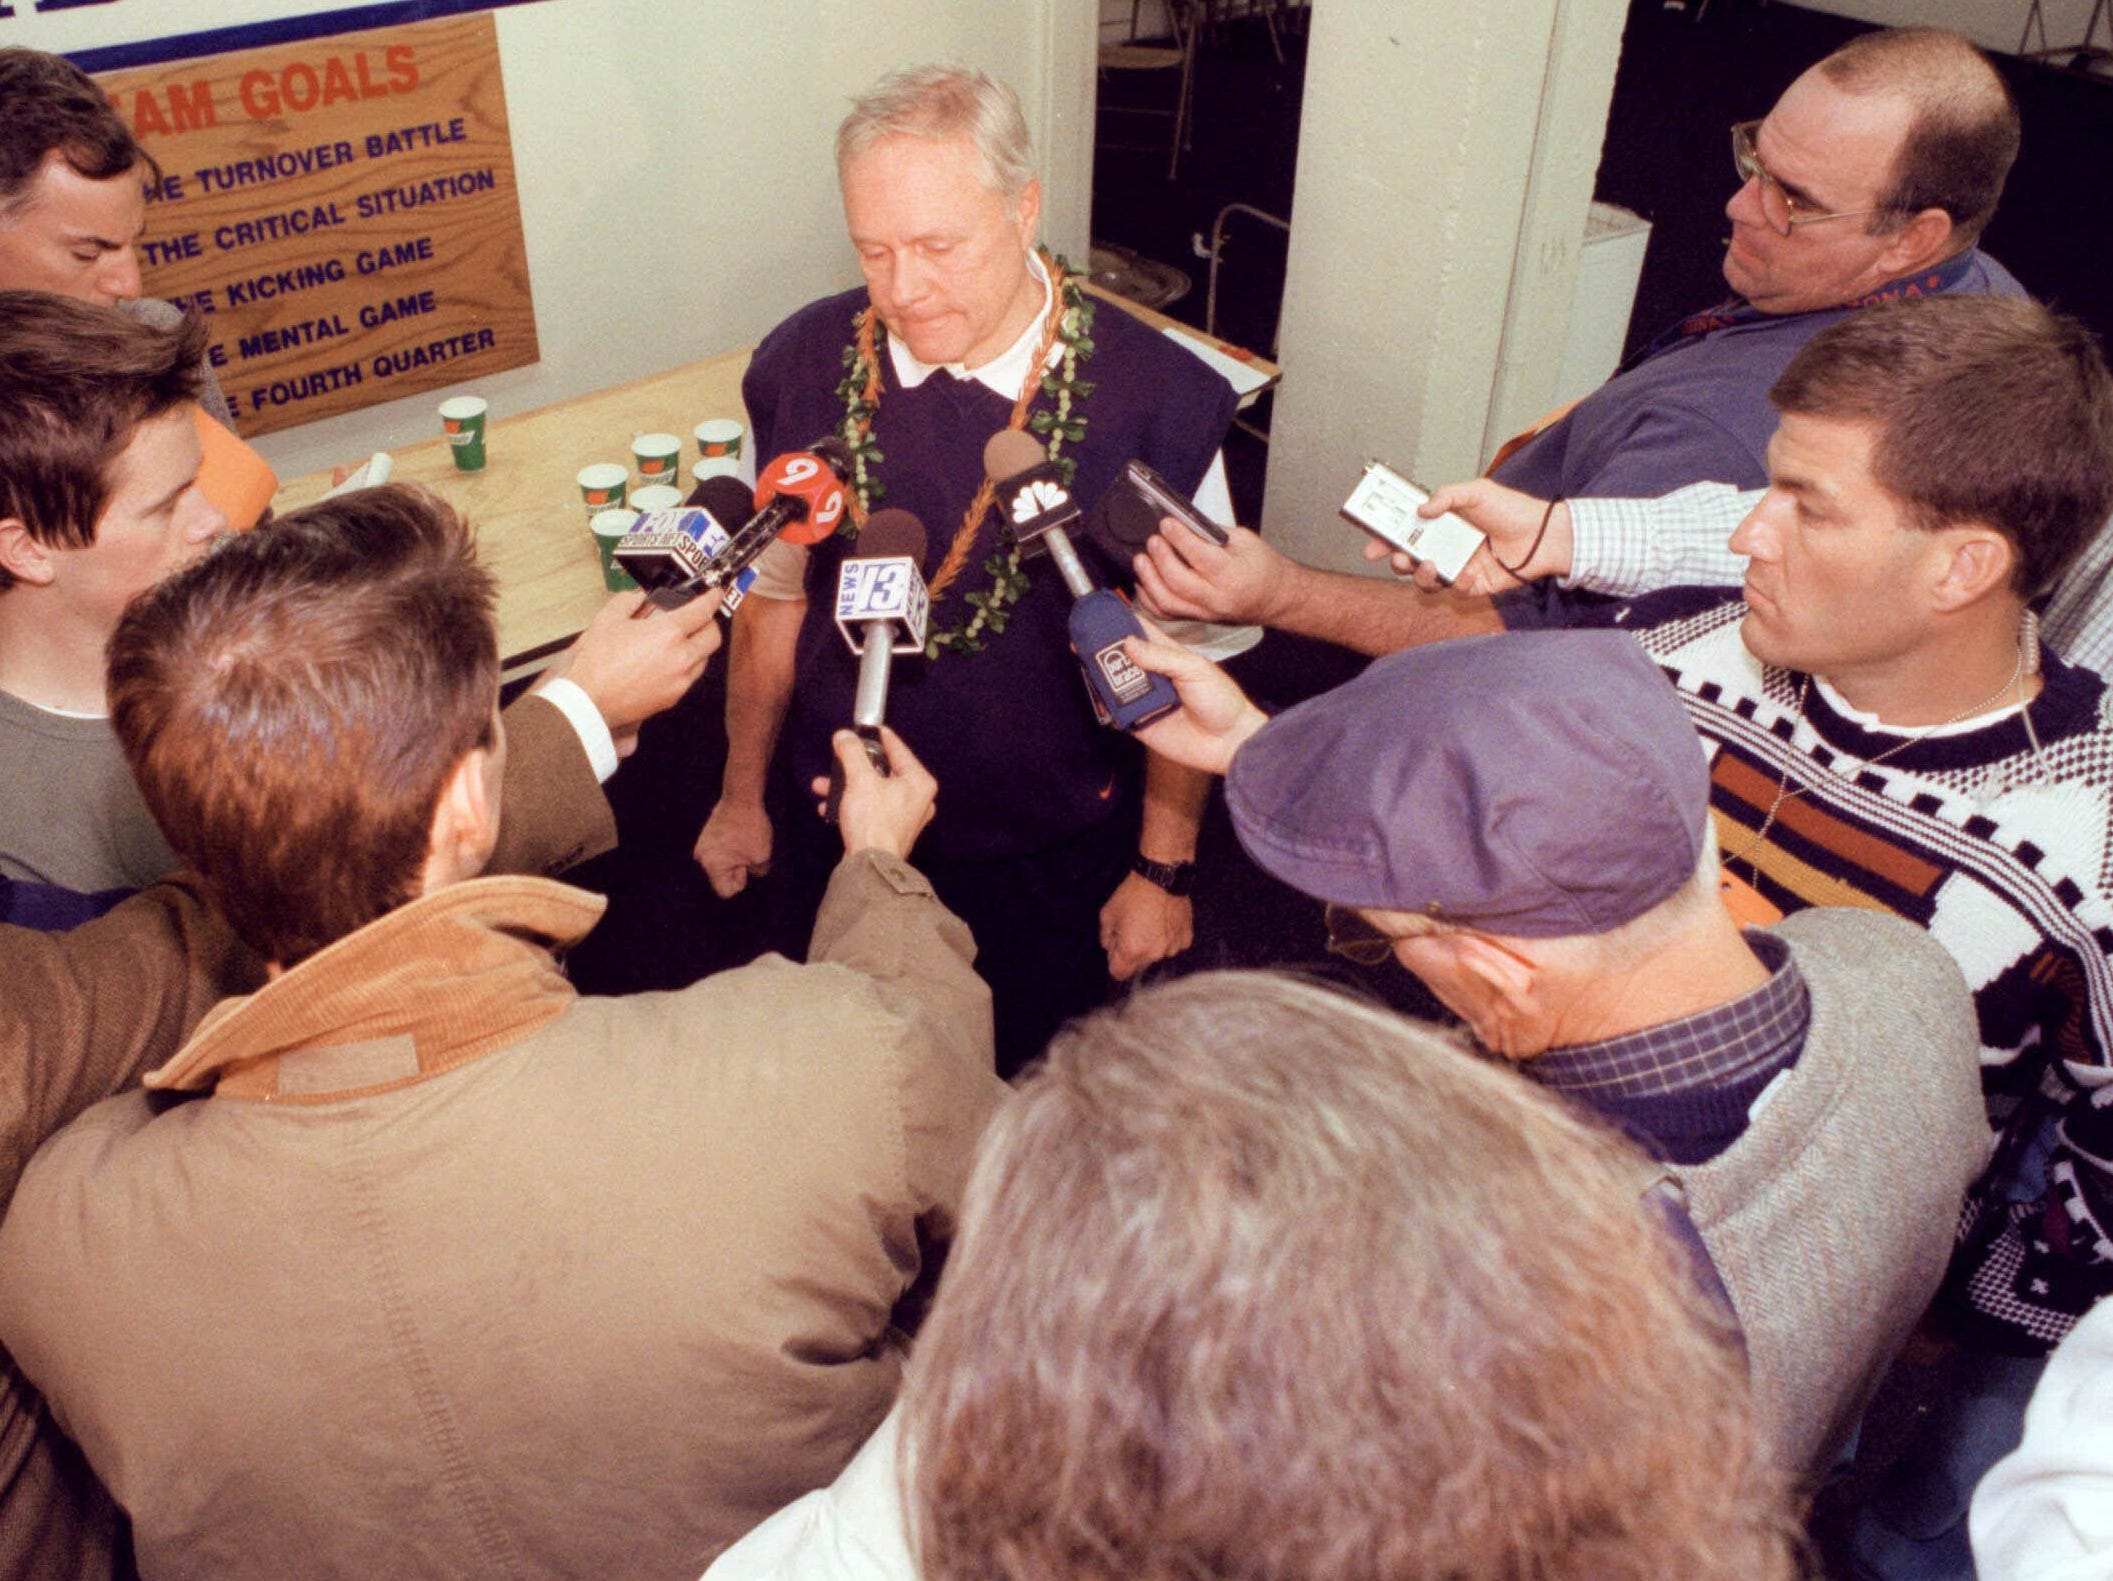 Arizona coach Dick Tomey fields questions after resigning moments after Arizona's 30-17 loss to Arizona State on Nov. 24, 2000